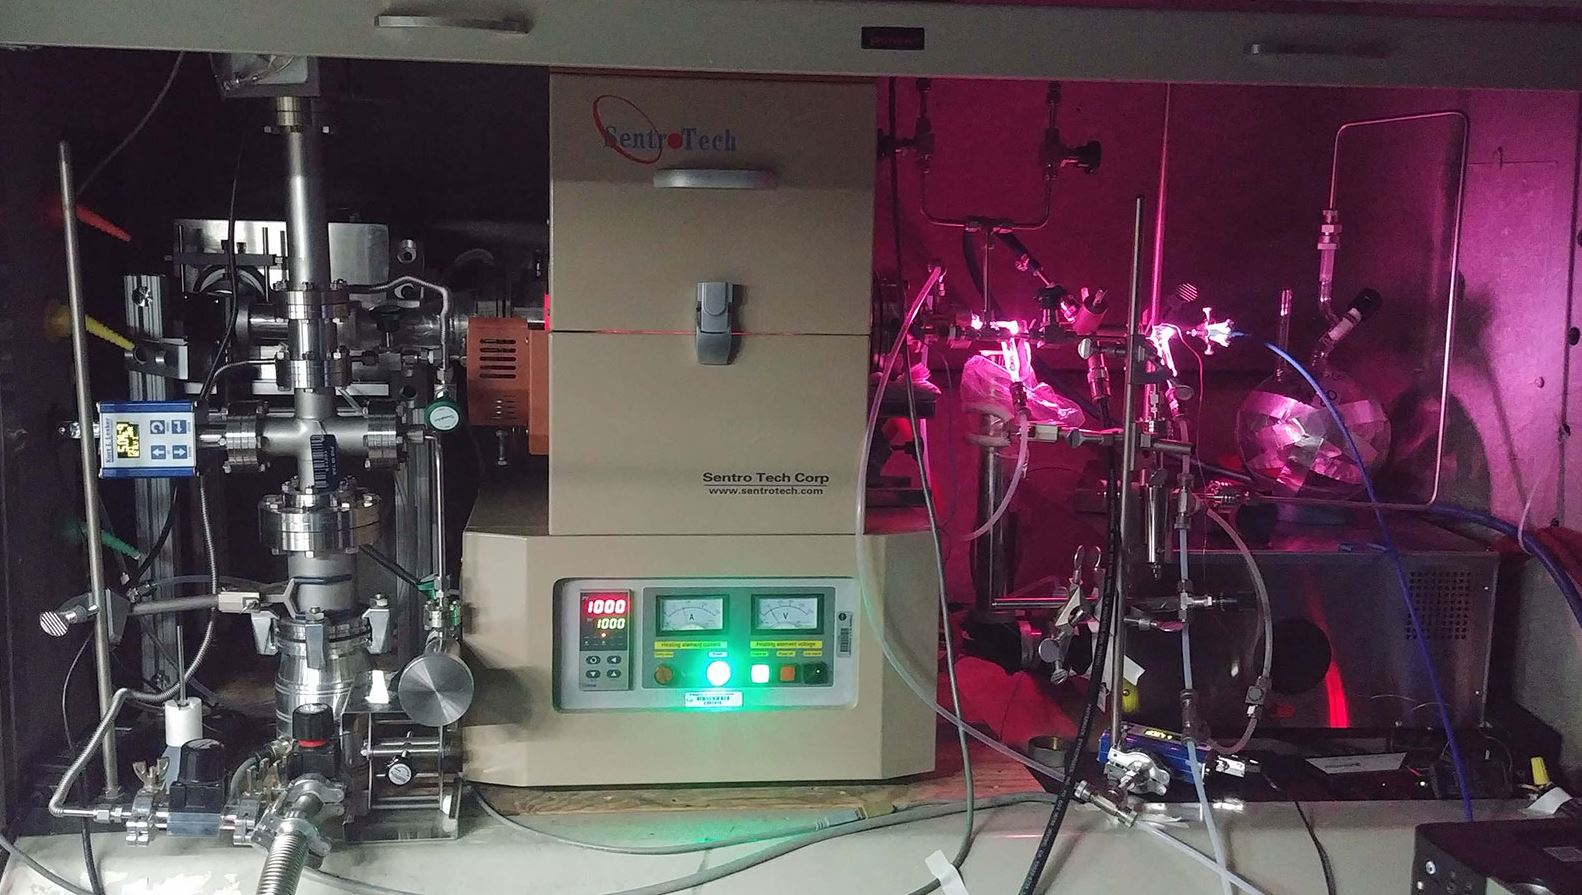 "JPL scientists used the ""oven"" (center) to heat a mixture of hydrogen and carbon monoxide and subject it to UV radiation, generated by a hydrogen gas discharge lamp. The lamp radiates both visible light (the pink glow) and UV light, which enters the gas container inside the oven via a window on the right side. - Image Credits: NASA/JPL-Caltech"